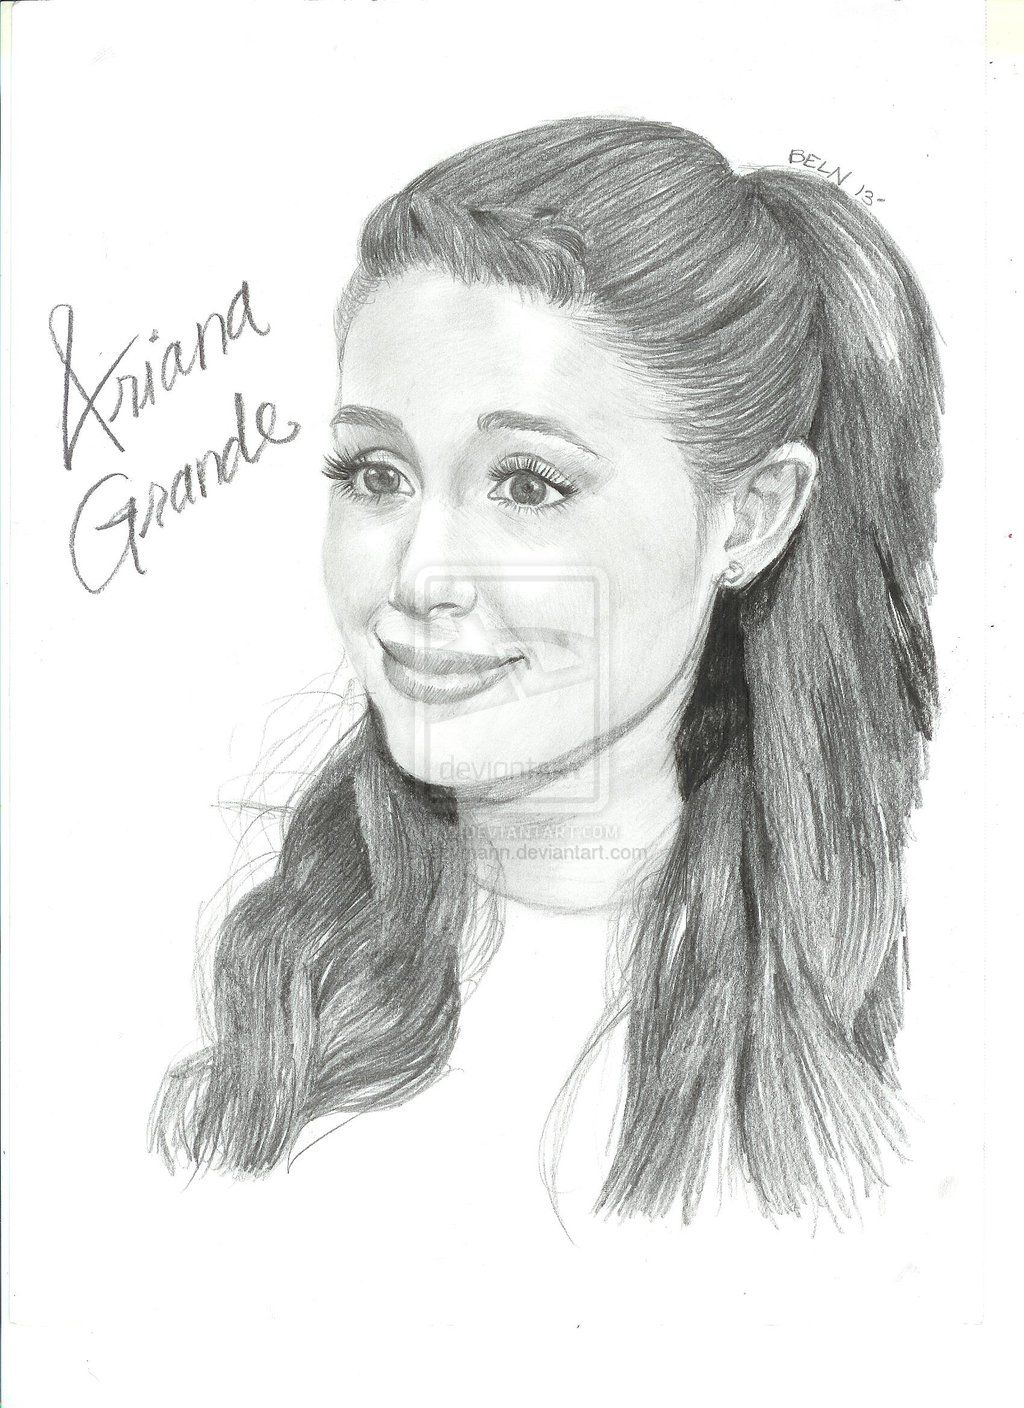 Ariana grande drawing ariana grande by blnart18 traditional art drawings portraits figures